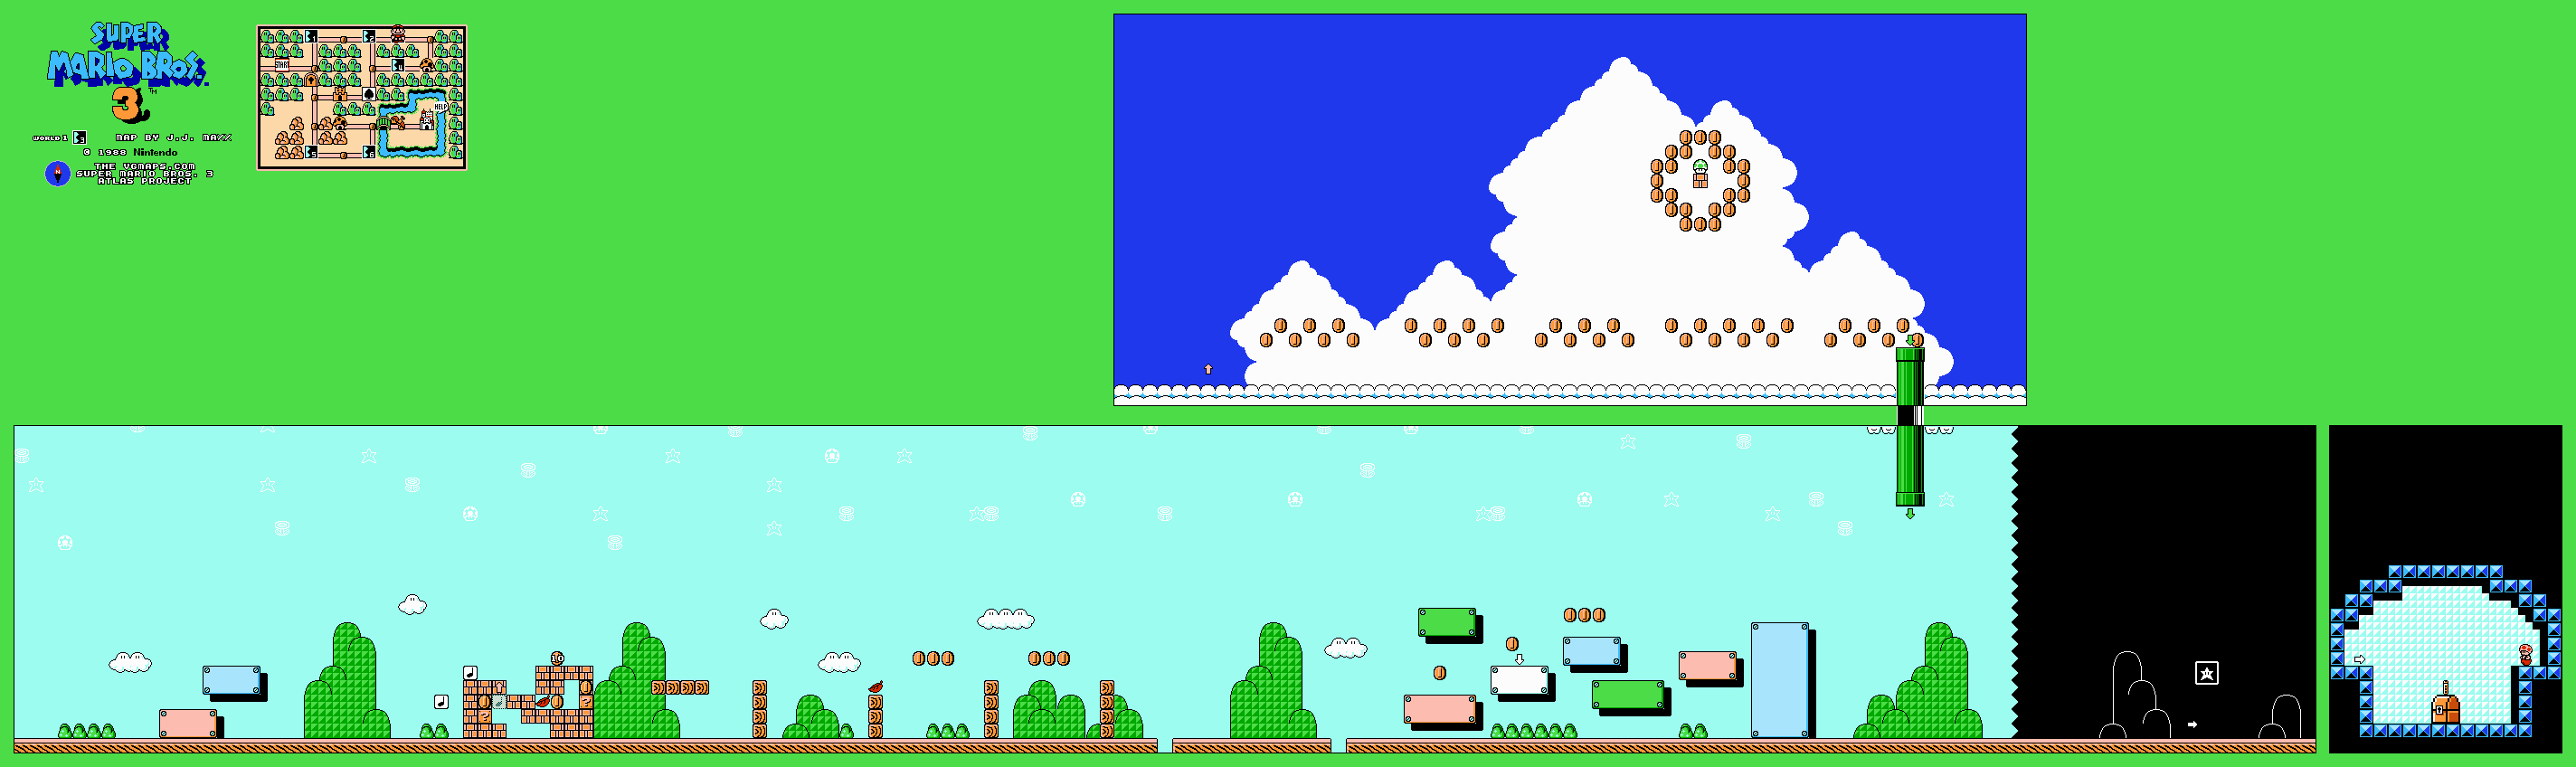 Super Mario World Maps